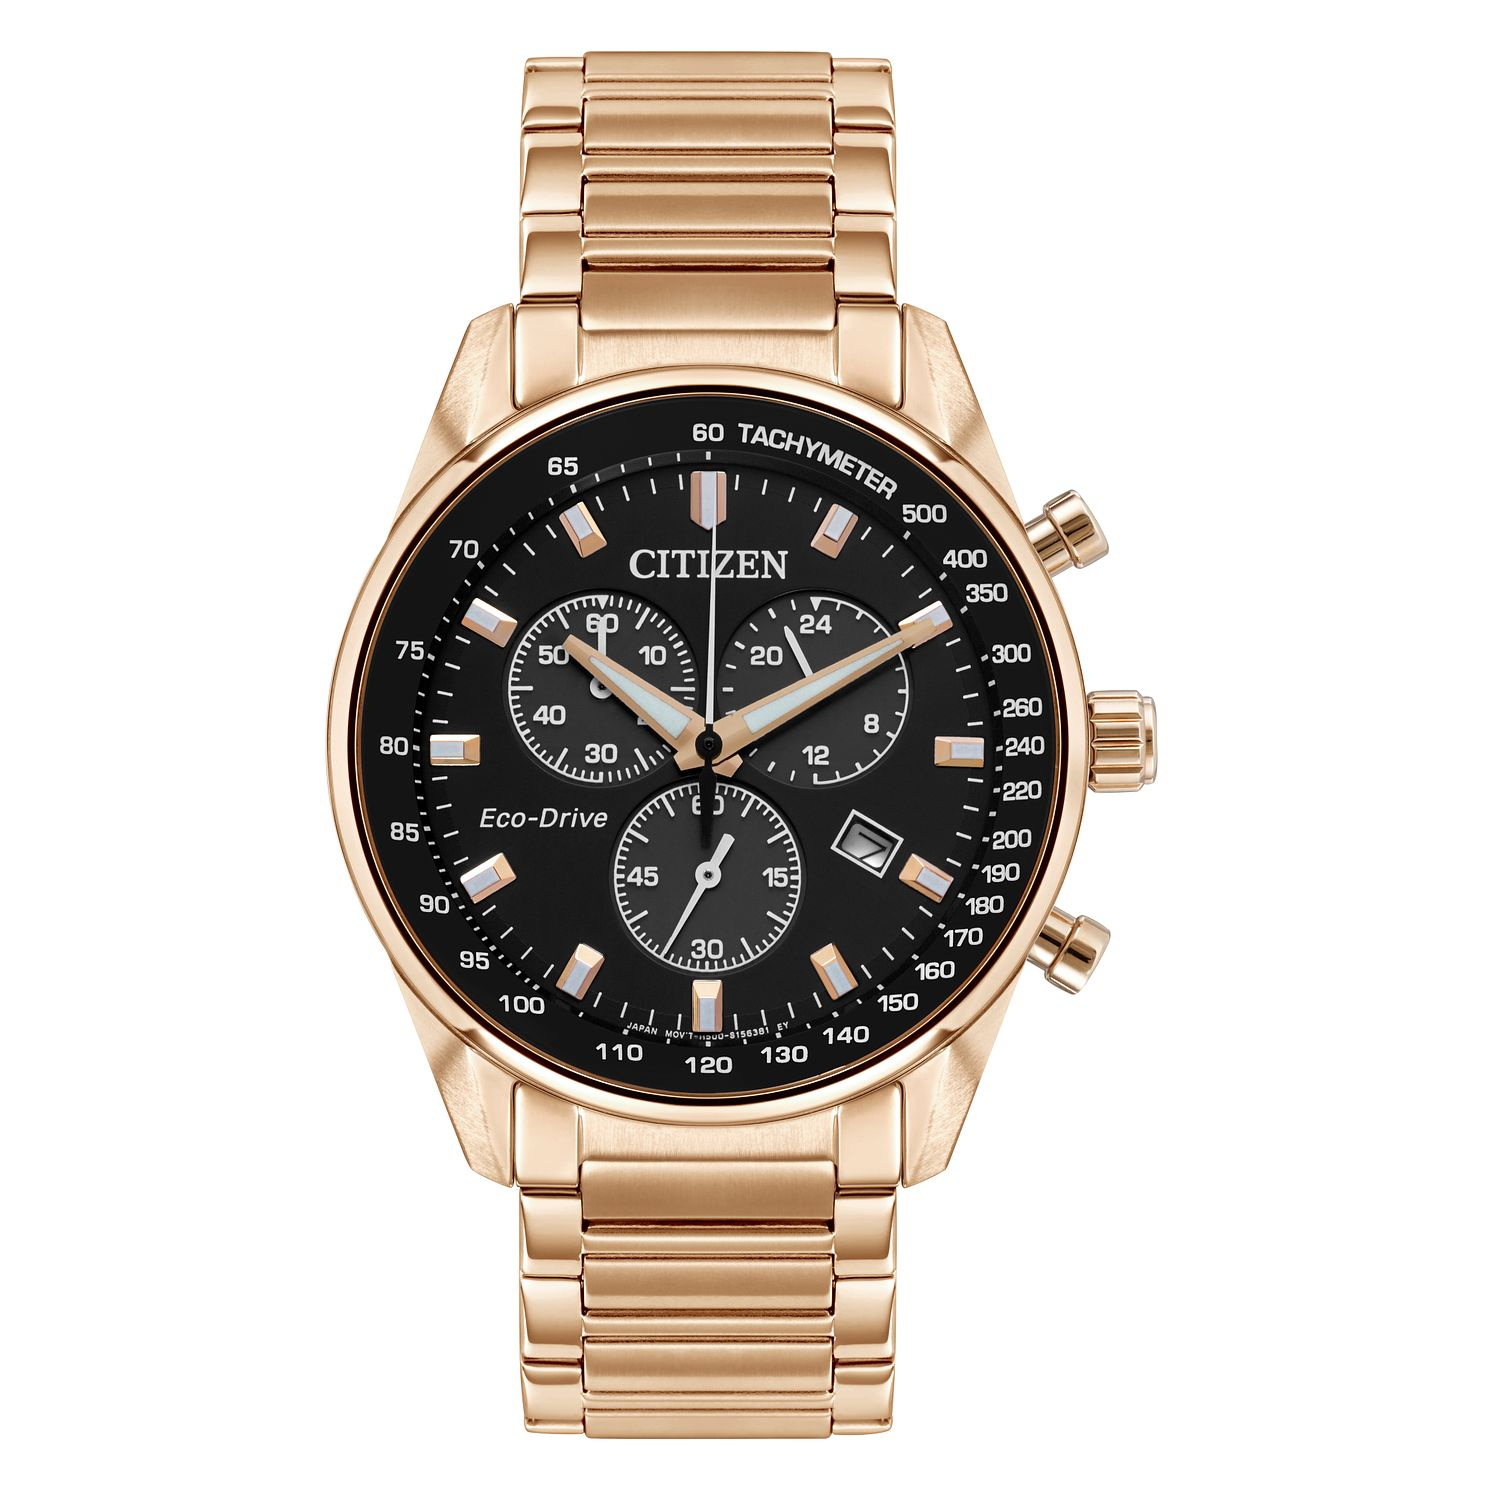 Citizen Men's Eco-Drive Gold Tone Bracelet Watch - Product number 9600604